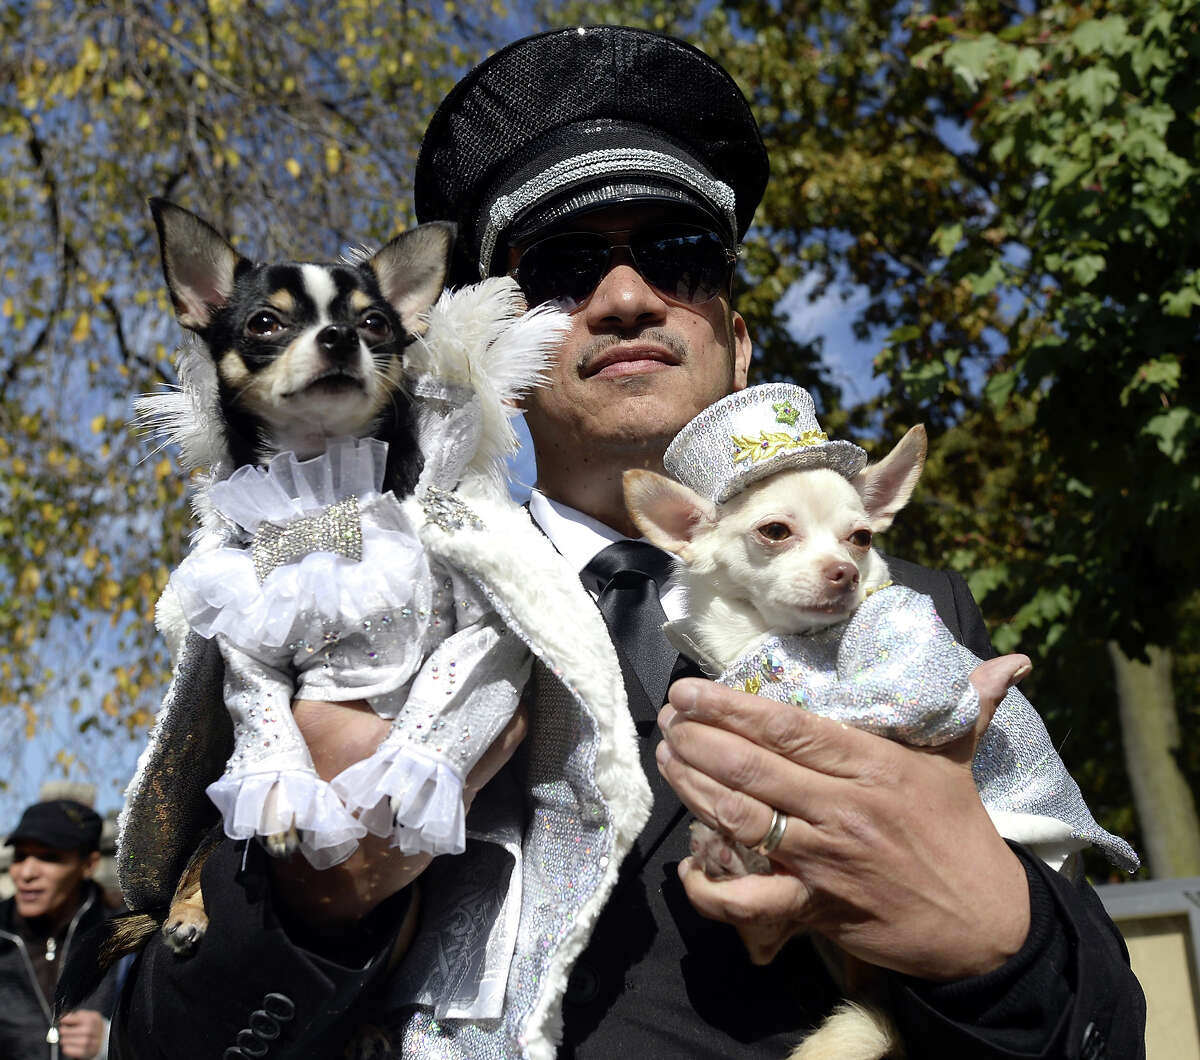 A contestant participates in the 23rd Annual Tompkins Square Halloween Dog Parade on October 26, 2013 in New York City. Thousands of spectators gather in Tompkins Square Park to watch hundreds of masquerading dogs in the country's largest Halloween Dog Parade.